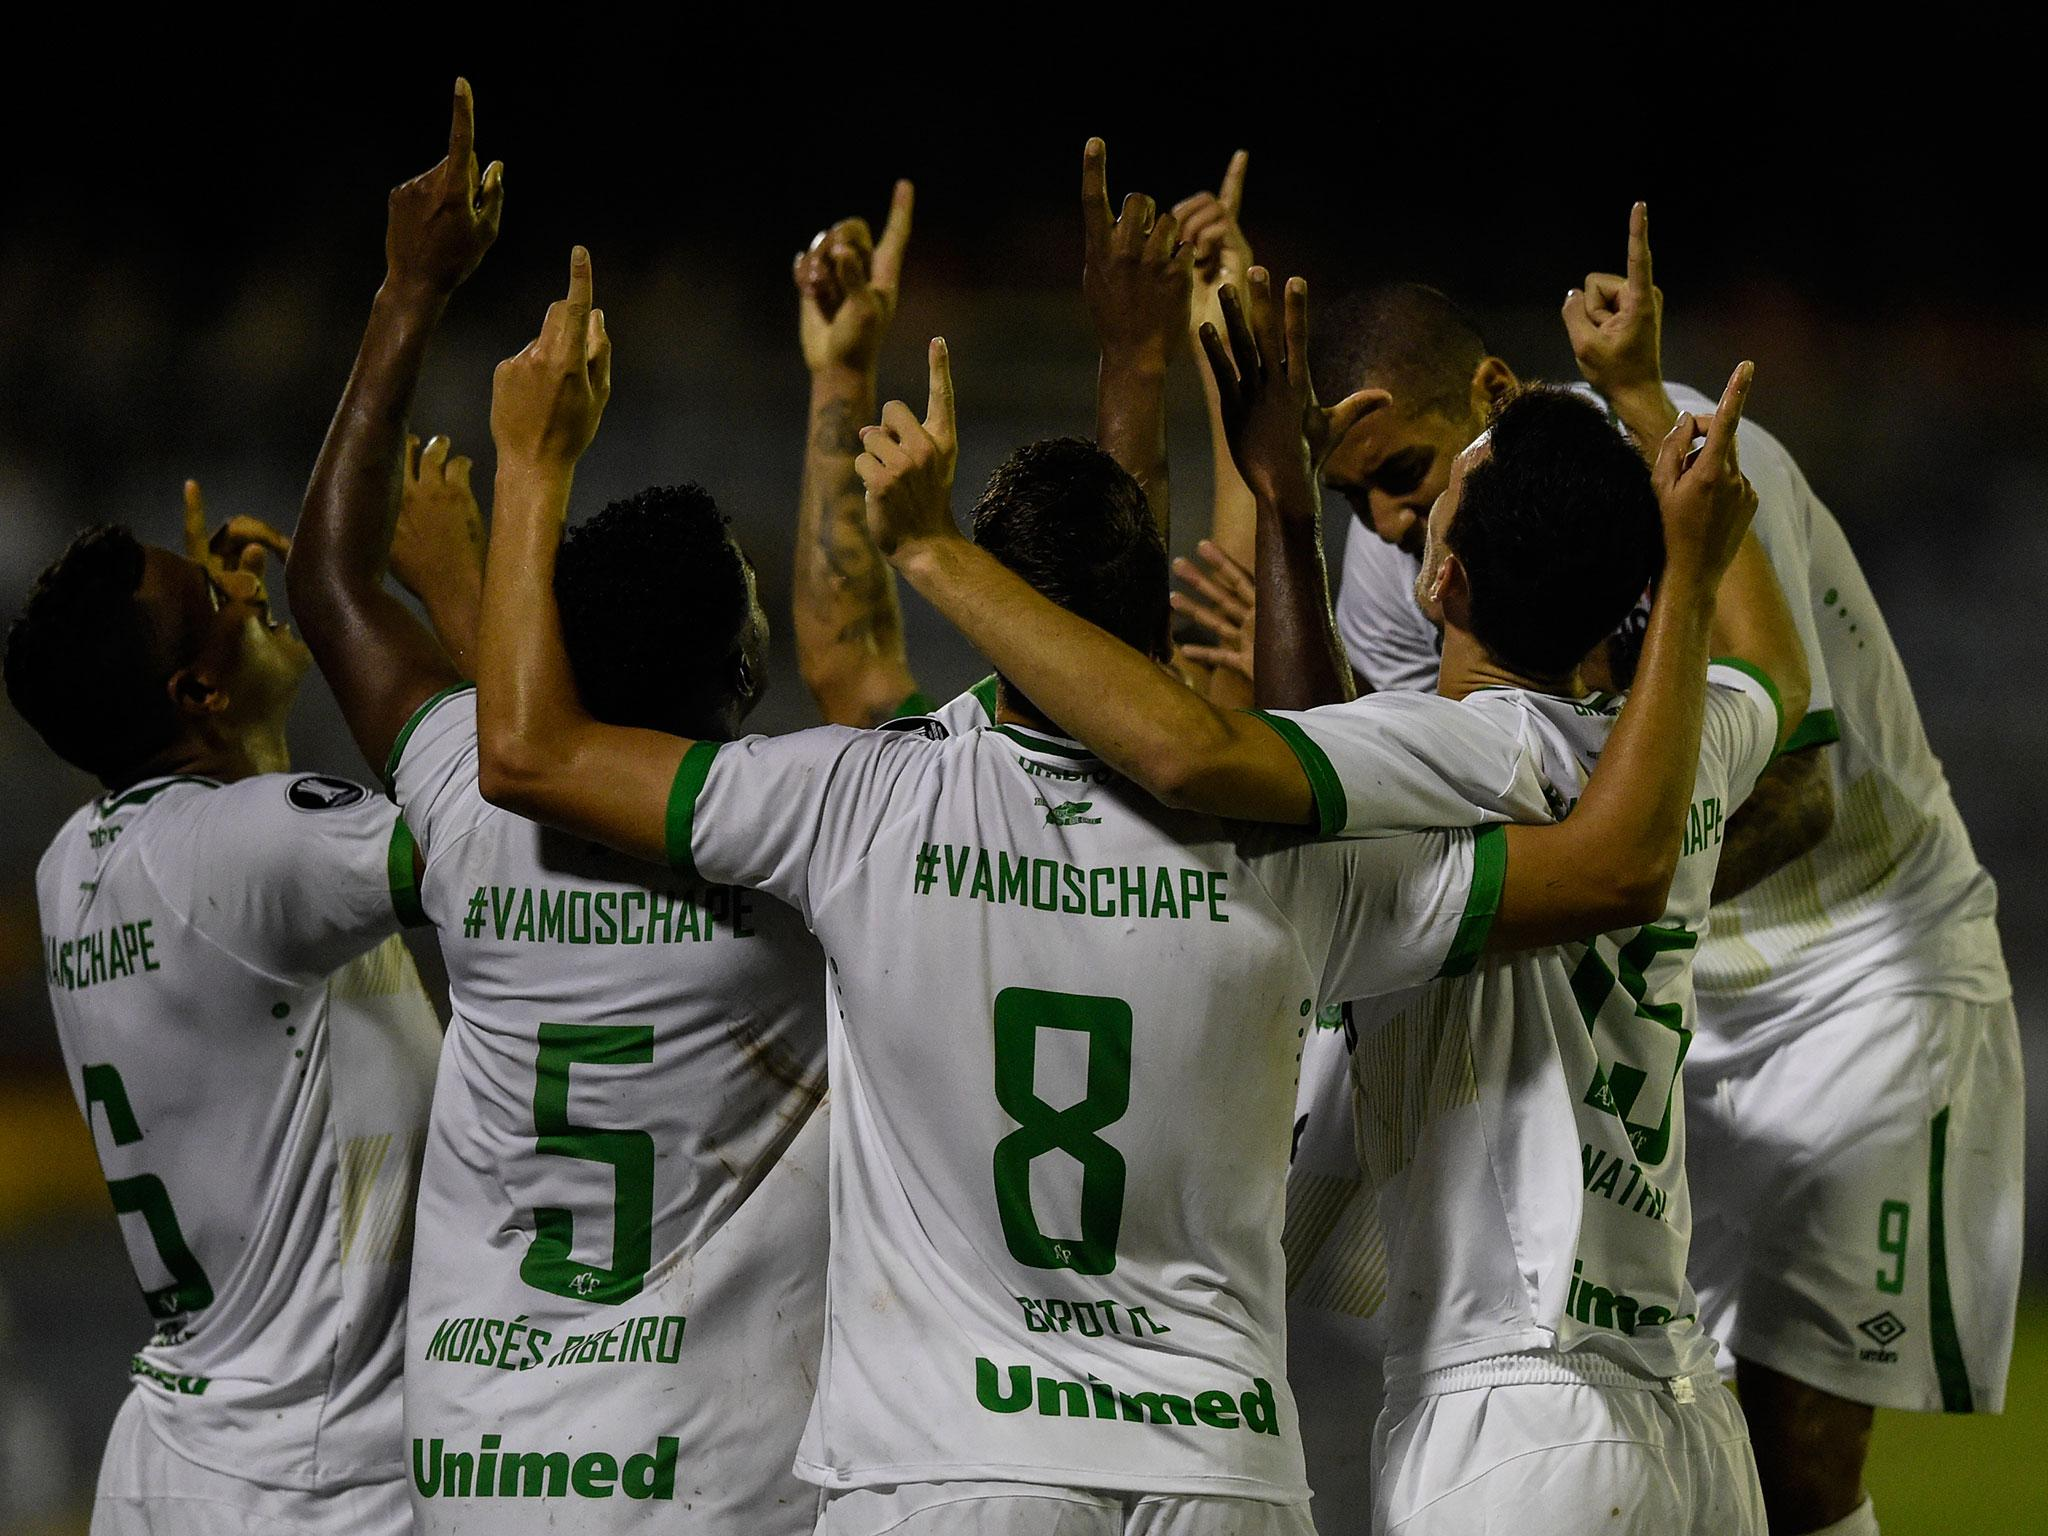 Rival fans taunt Chapecoense over plane crash that killed 71 people